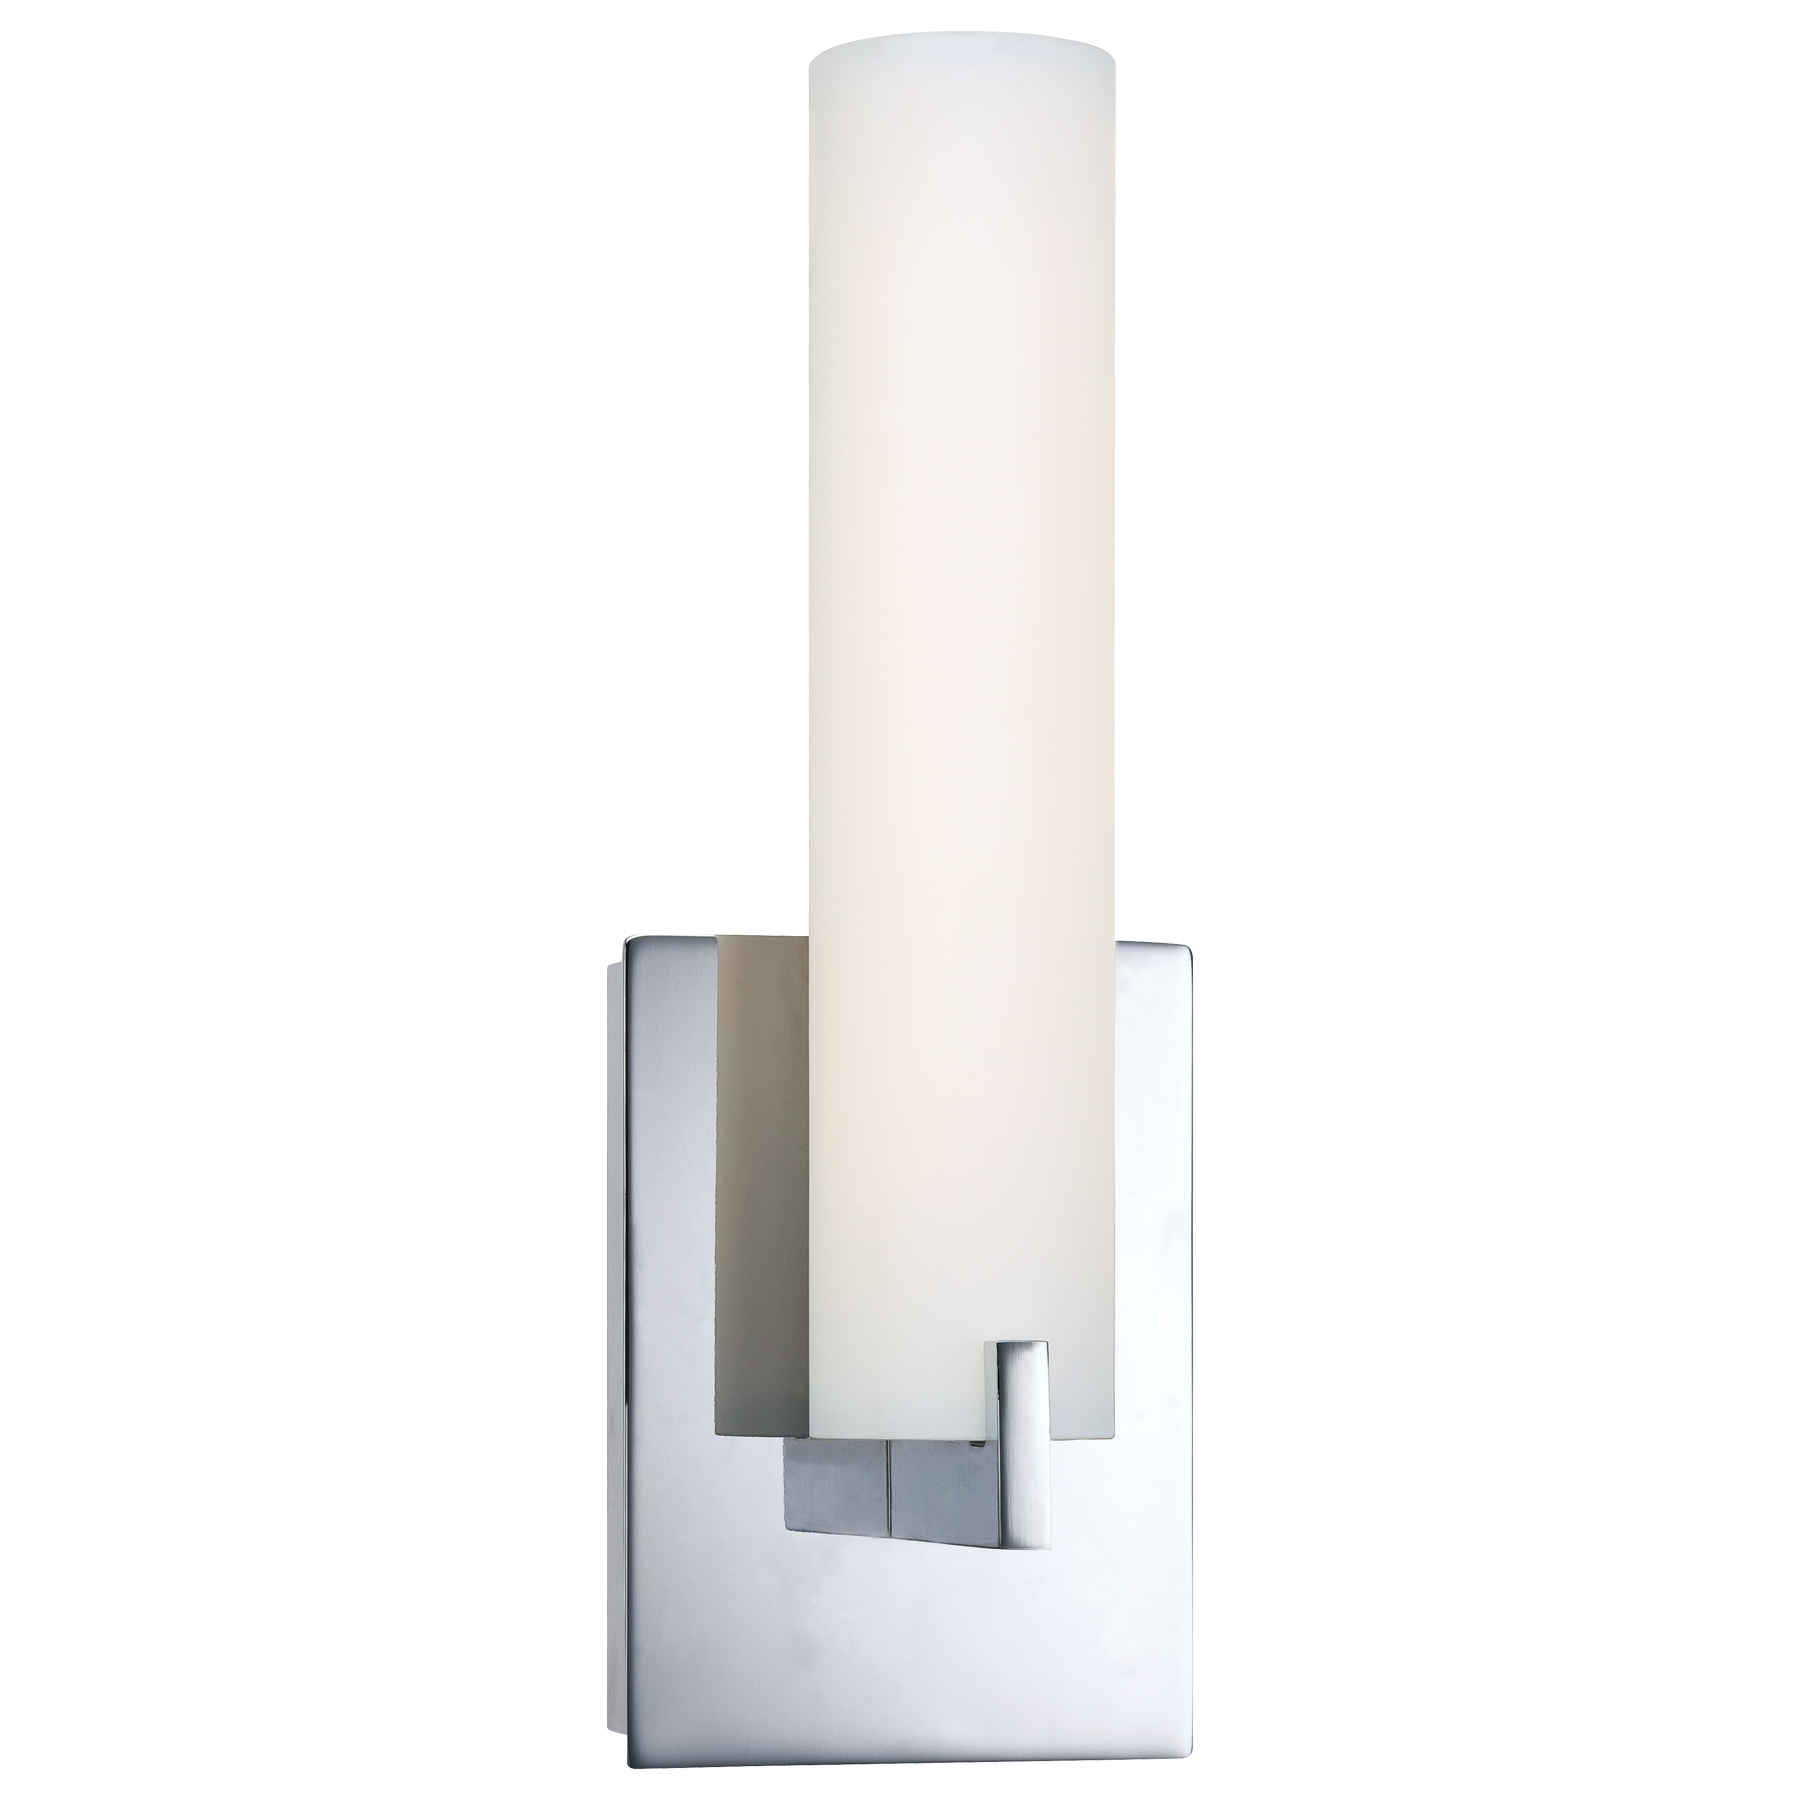 Tube LED Vanity Wall Sconce by George Kovacs | P5040-077-L